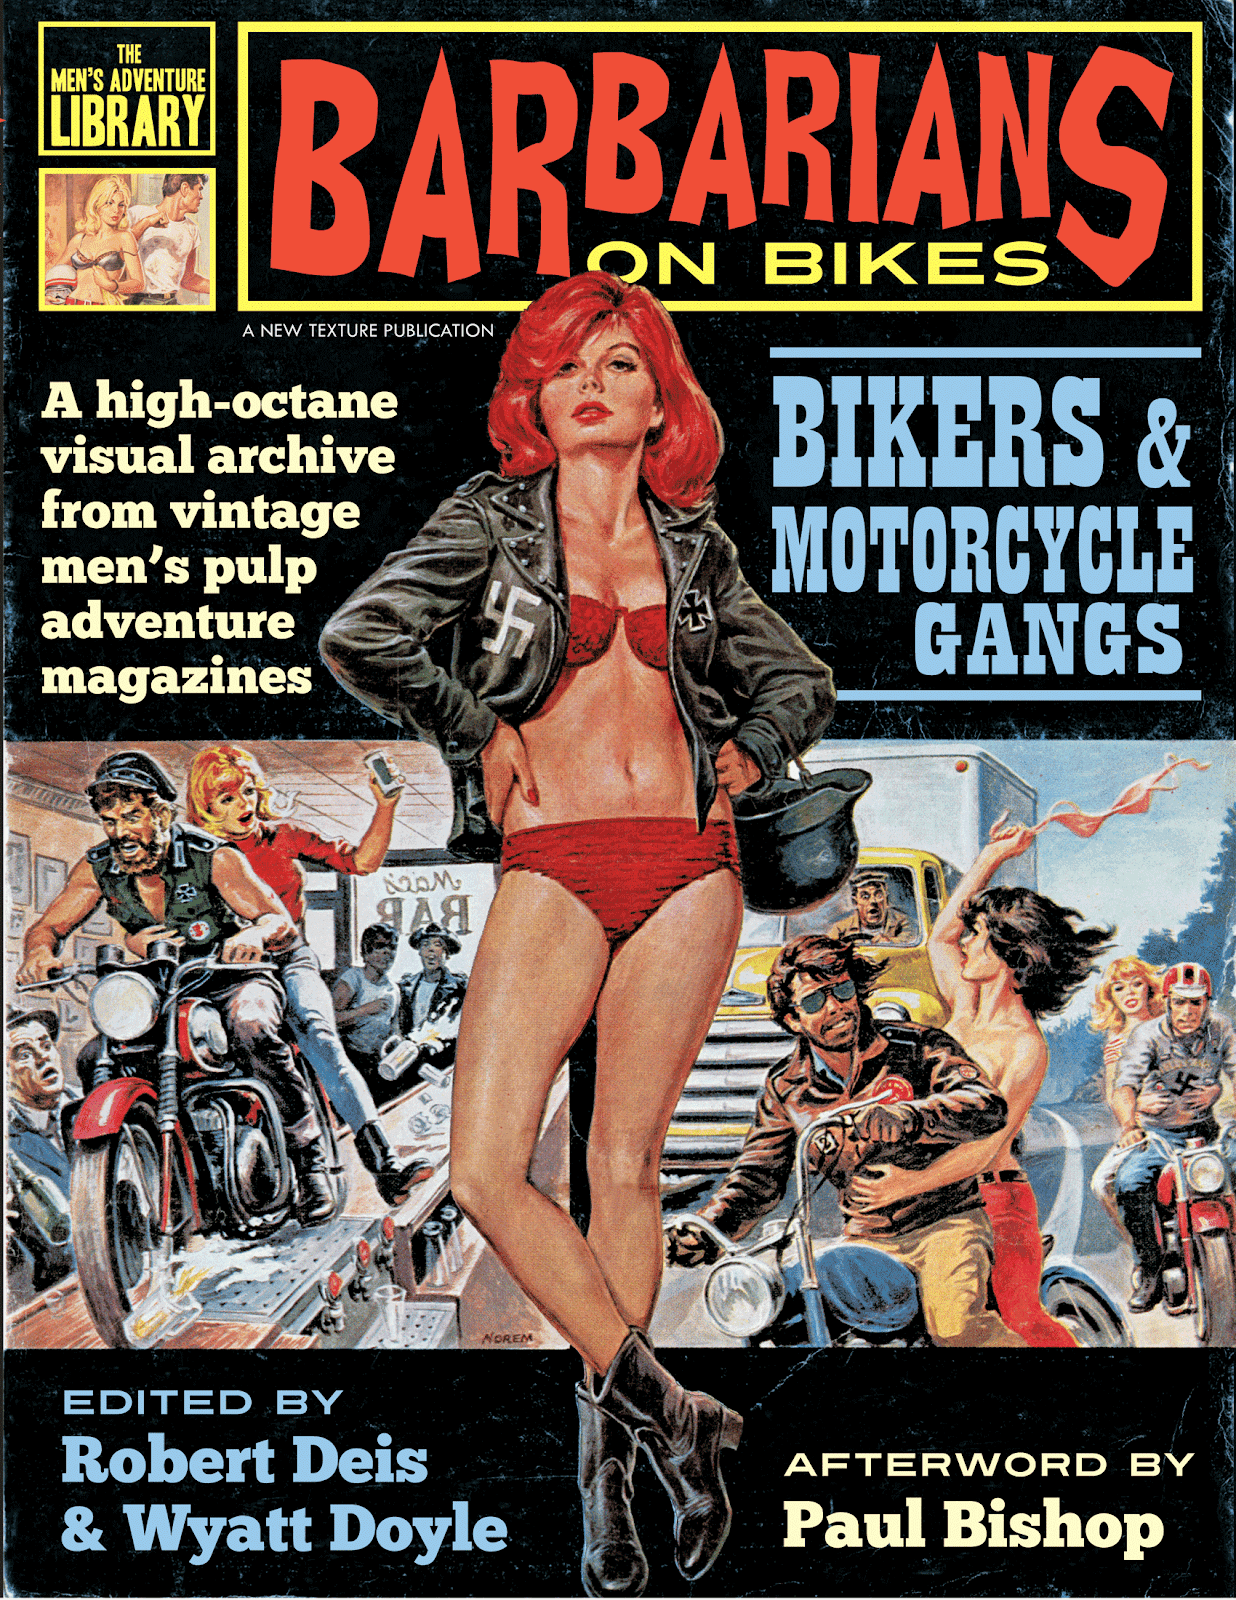 BARBARIANS ON BIKES